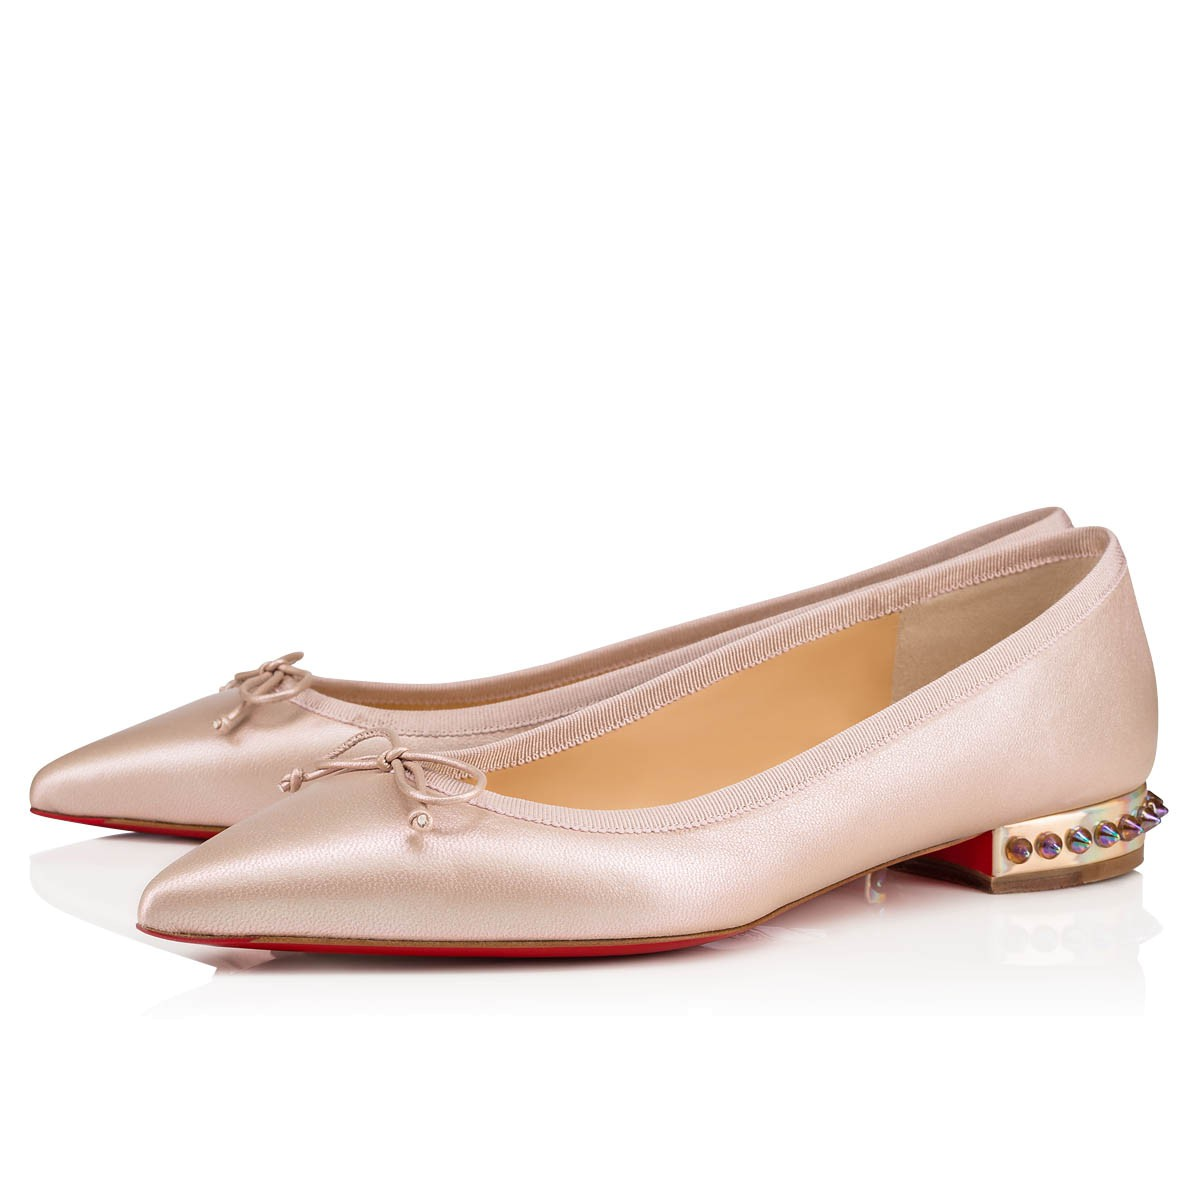 huge discount bf2bb e0c17 Hall Flat Version Nude Nappa AB - Women Shoes - Christian Louboutin